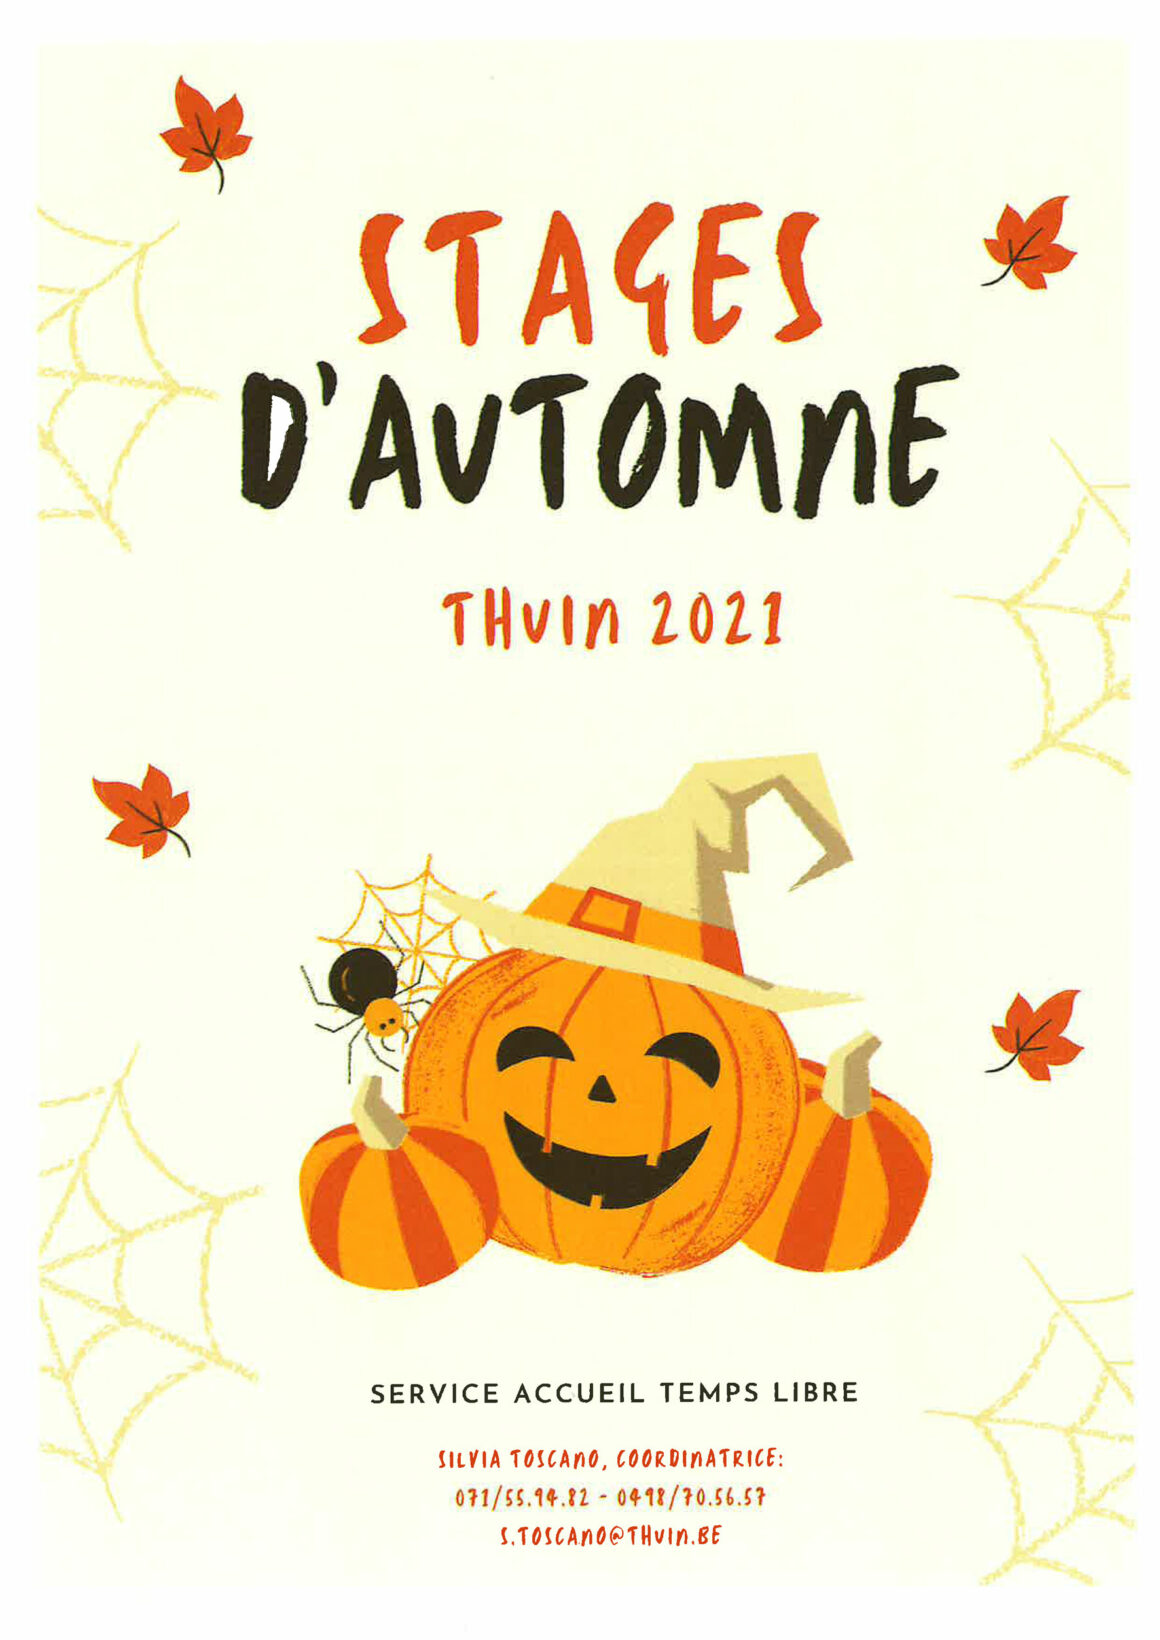 ATL : Stages d'automne Thuin 2021